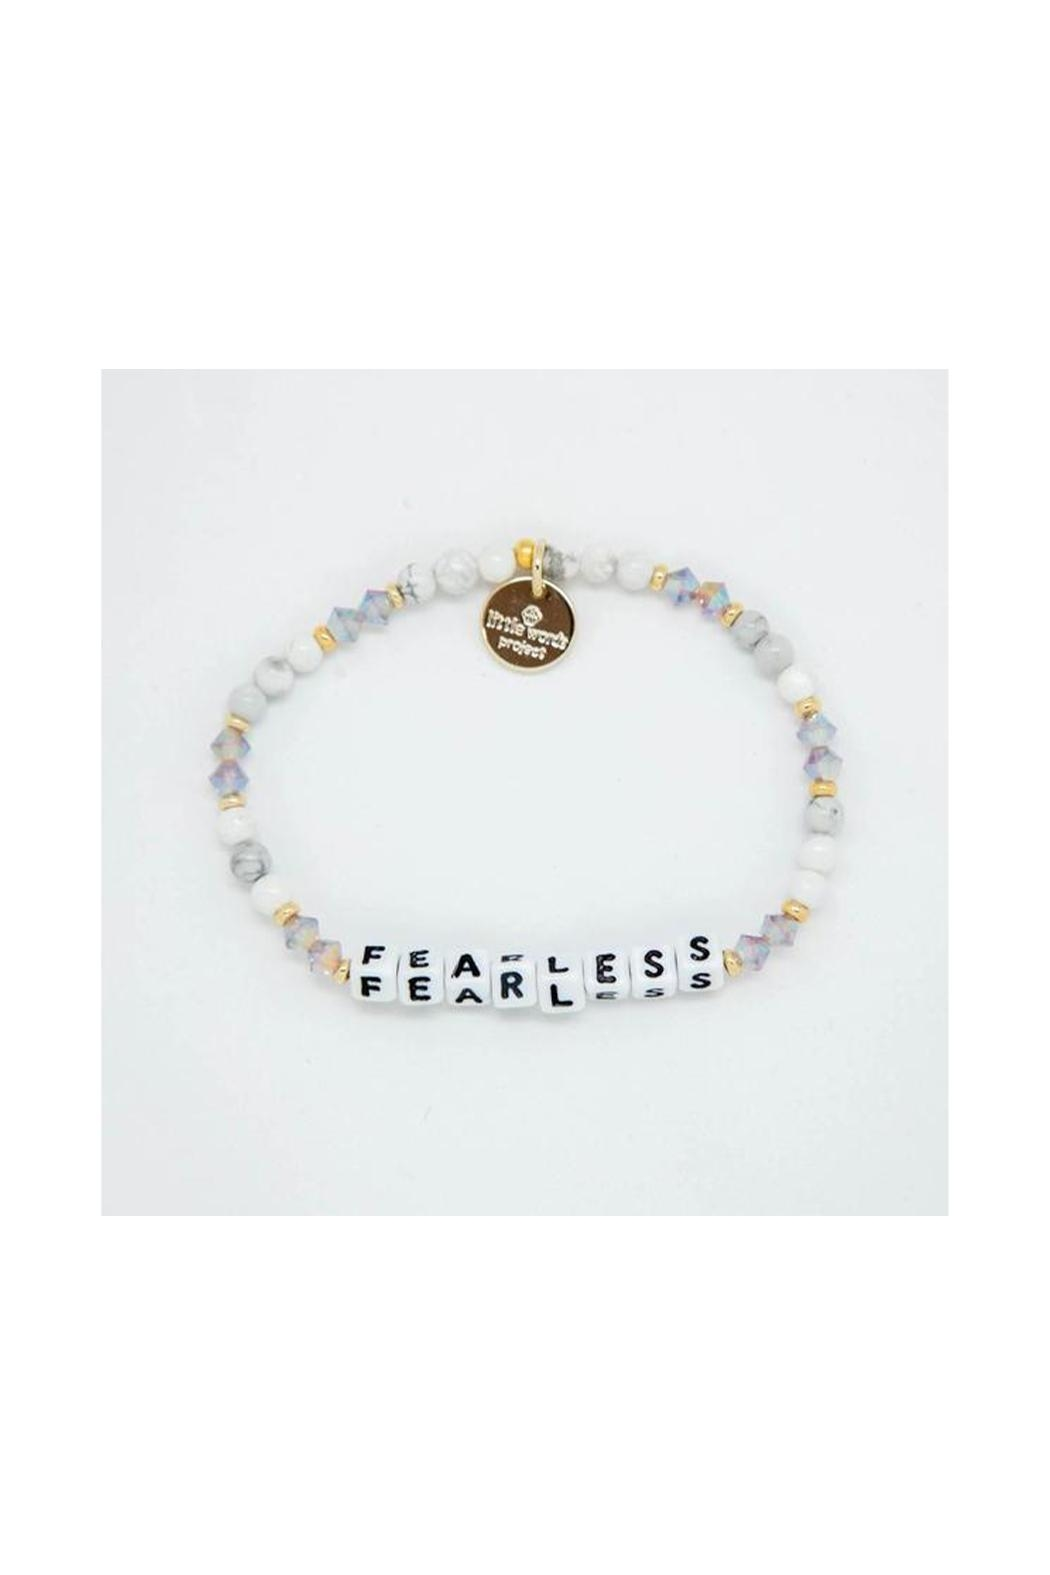 Private Label Little Words Project - Fearless - Main Image